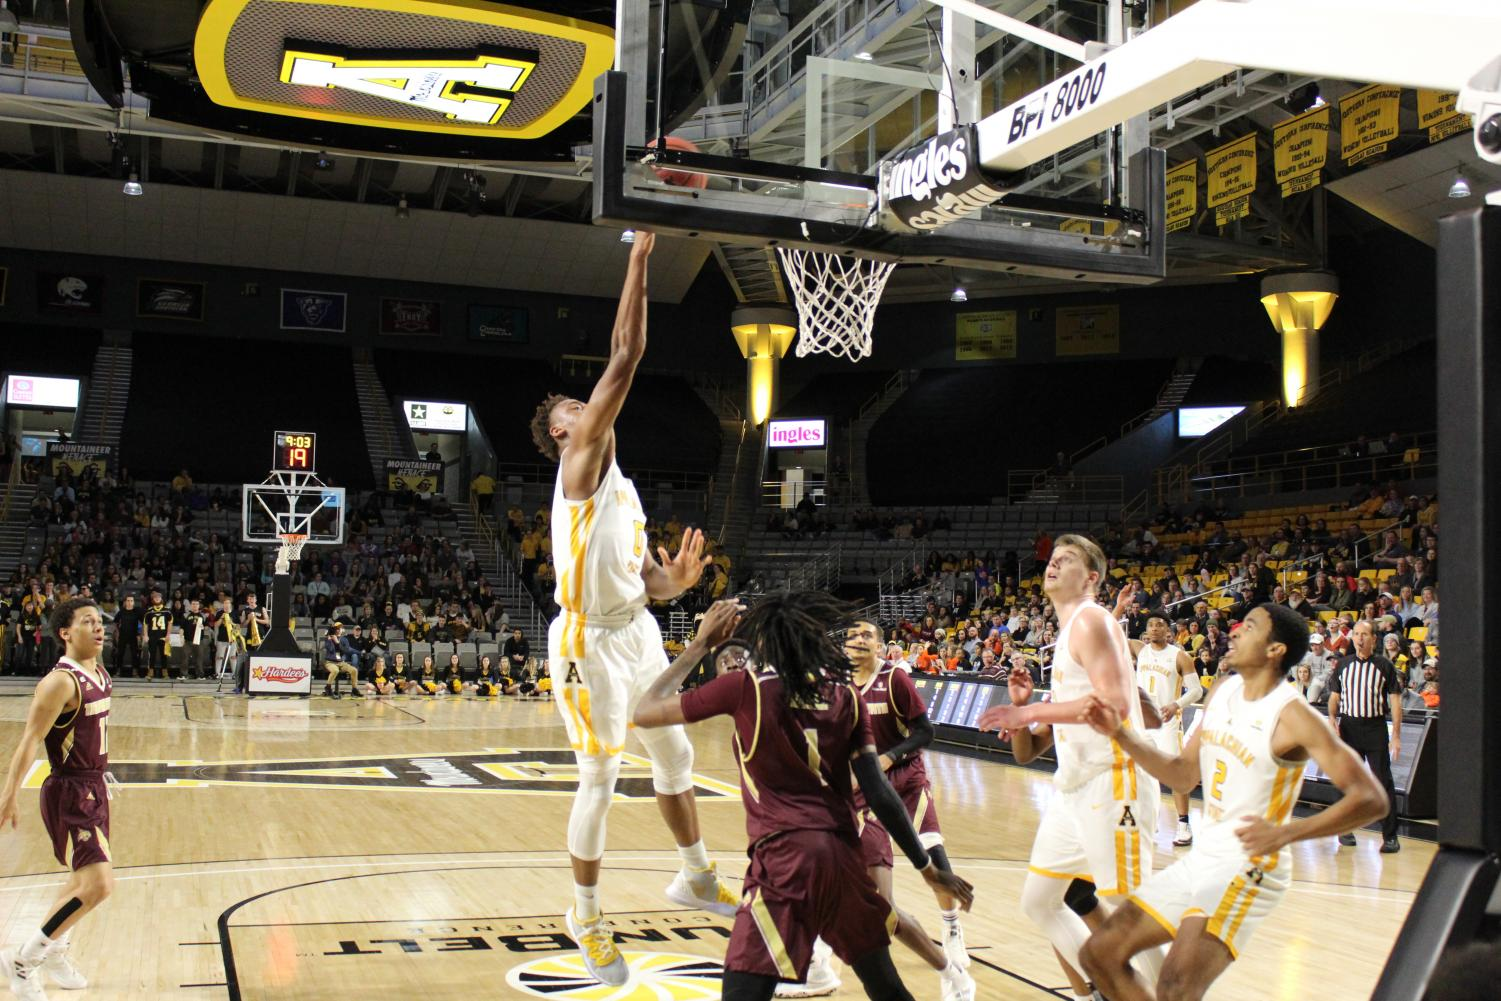 Senior forward Isaac Johnson goes up for a layup in App State's 60-57 win over Texas State on Feb. 8. Johnson finished with eight points and six rebounds in the game.